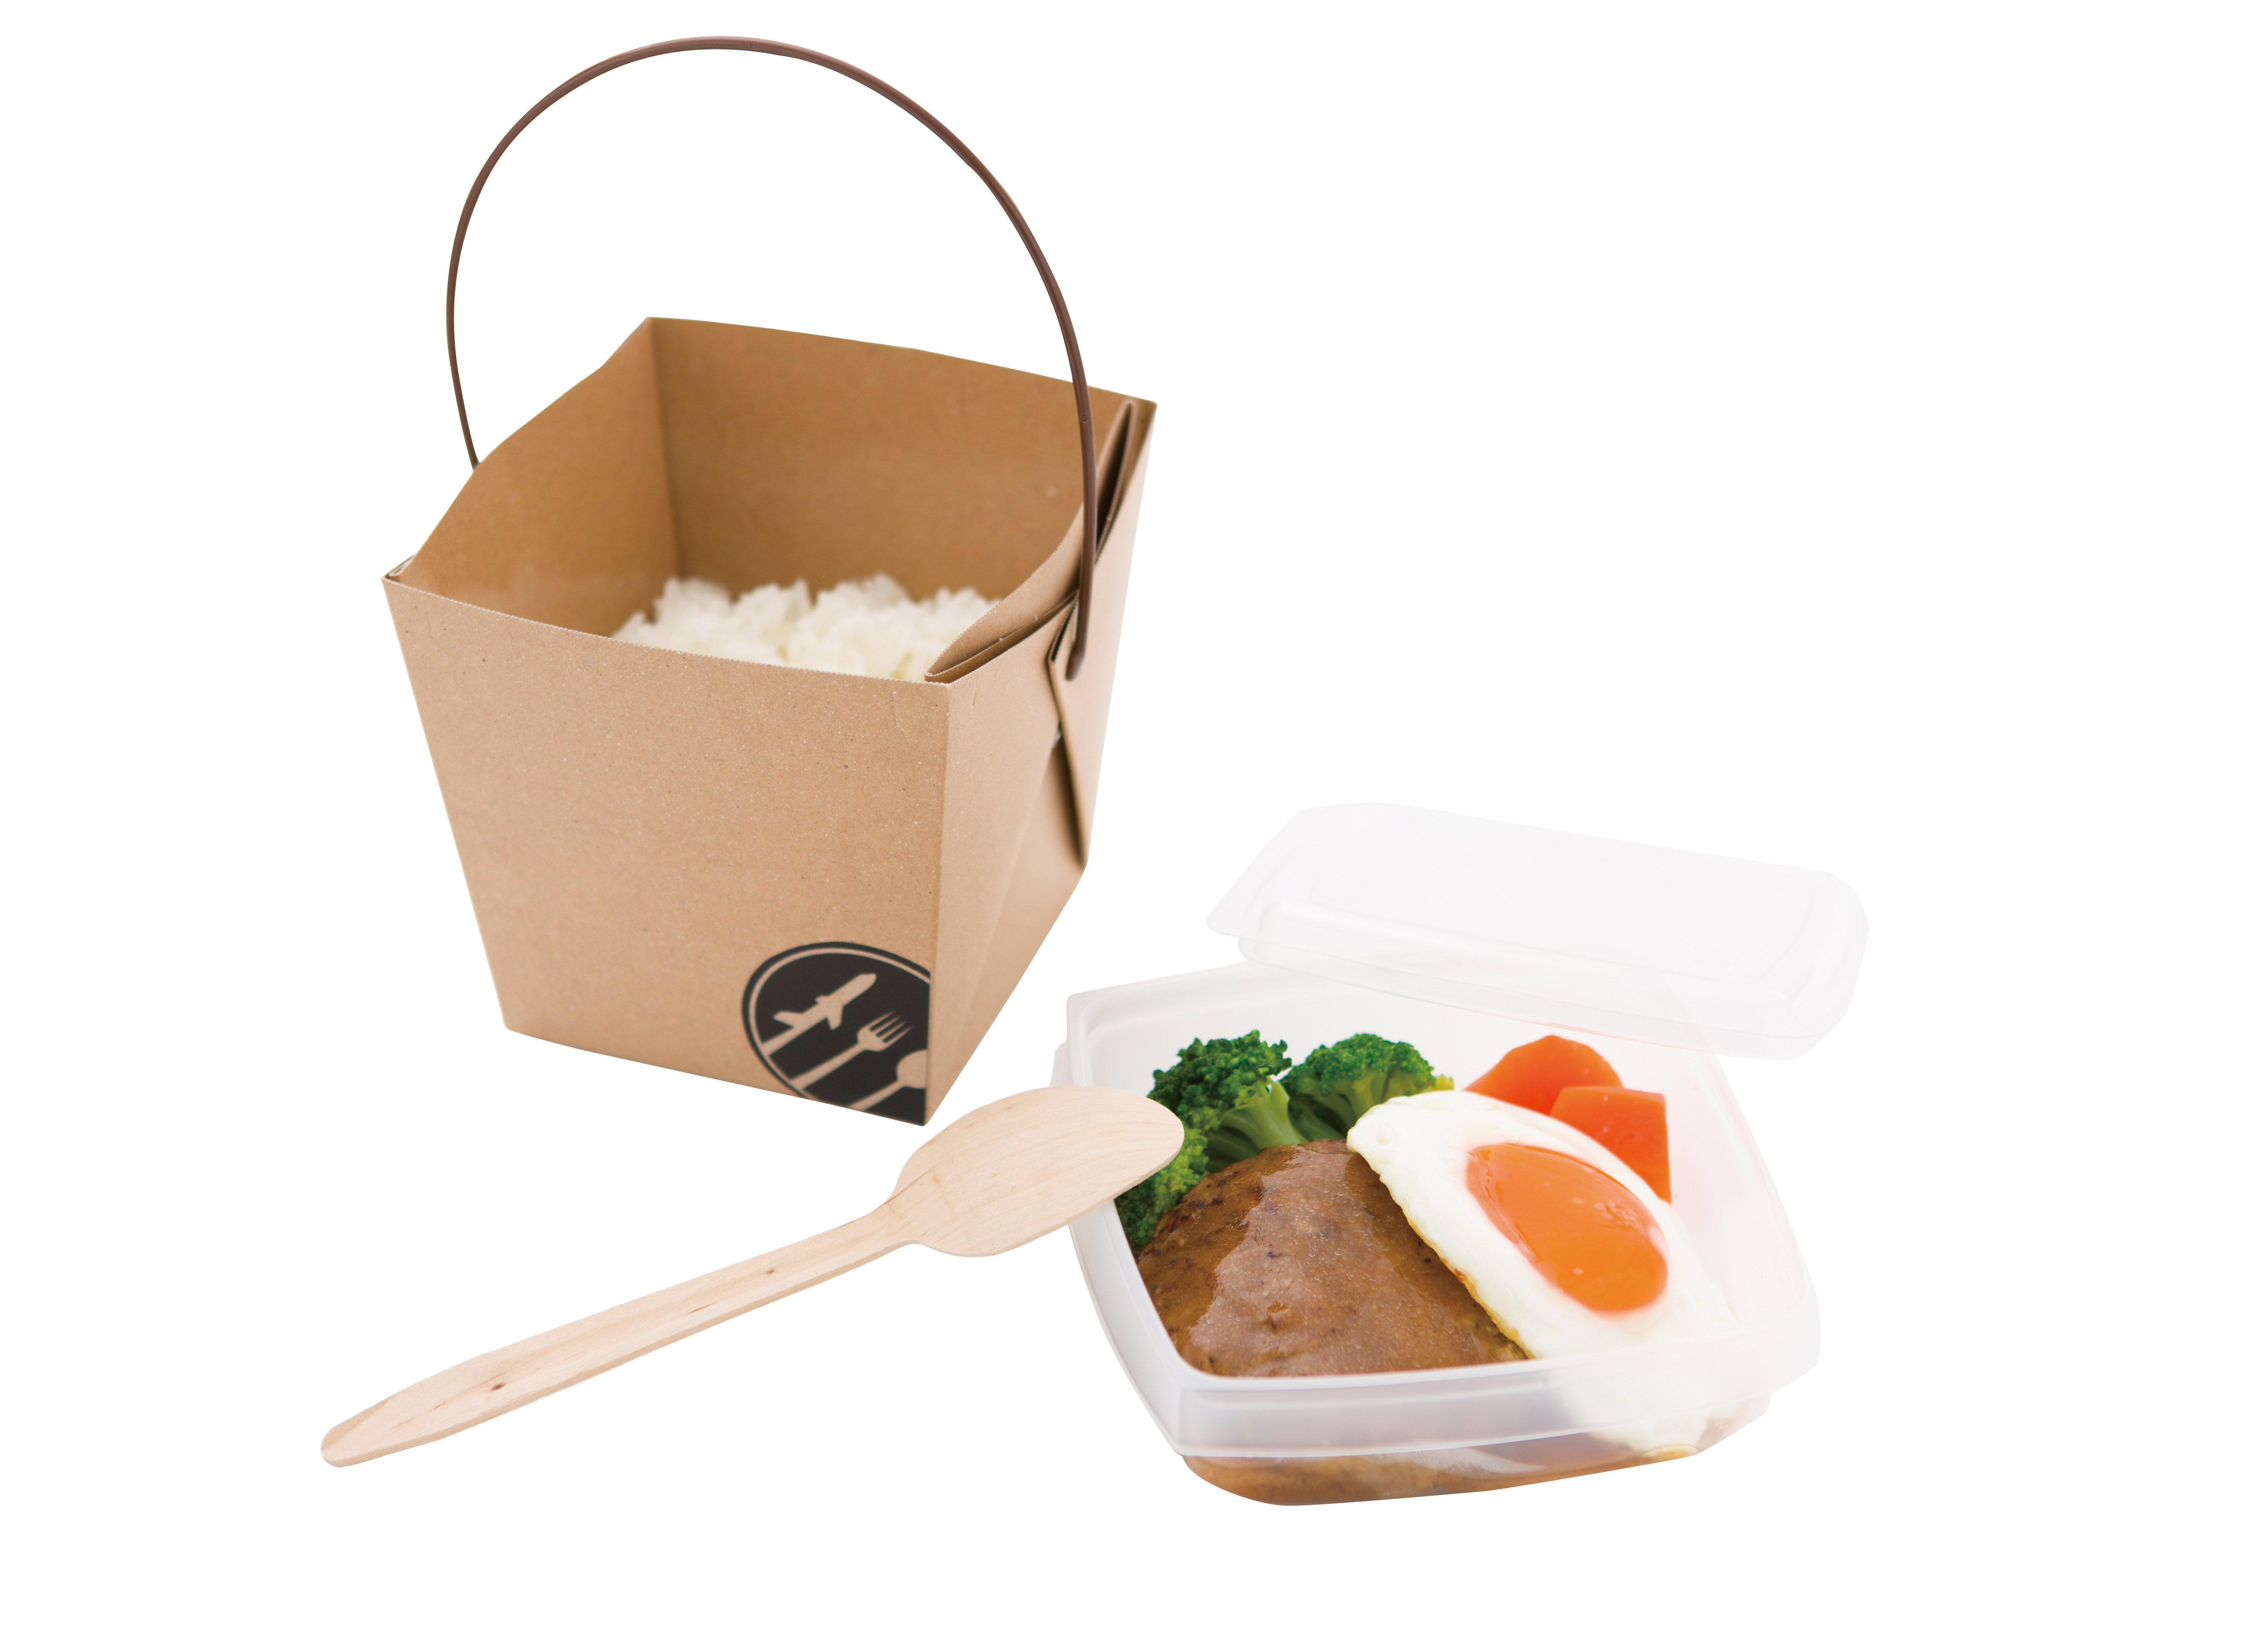 03 Meals in the lunch box for commercial use